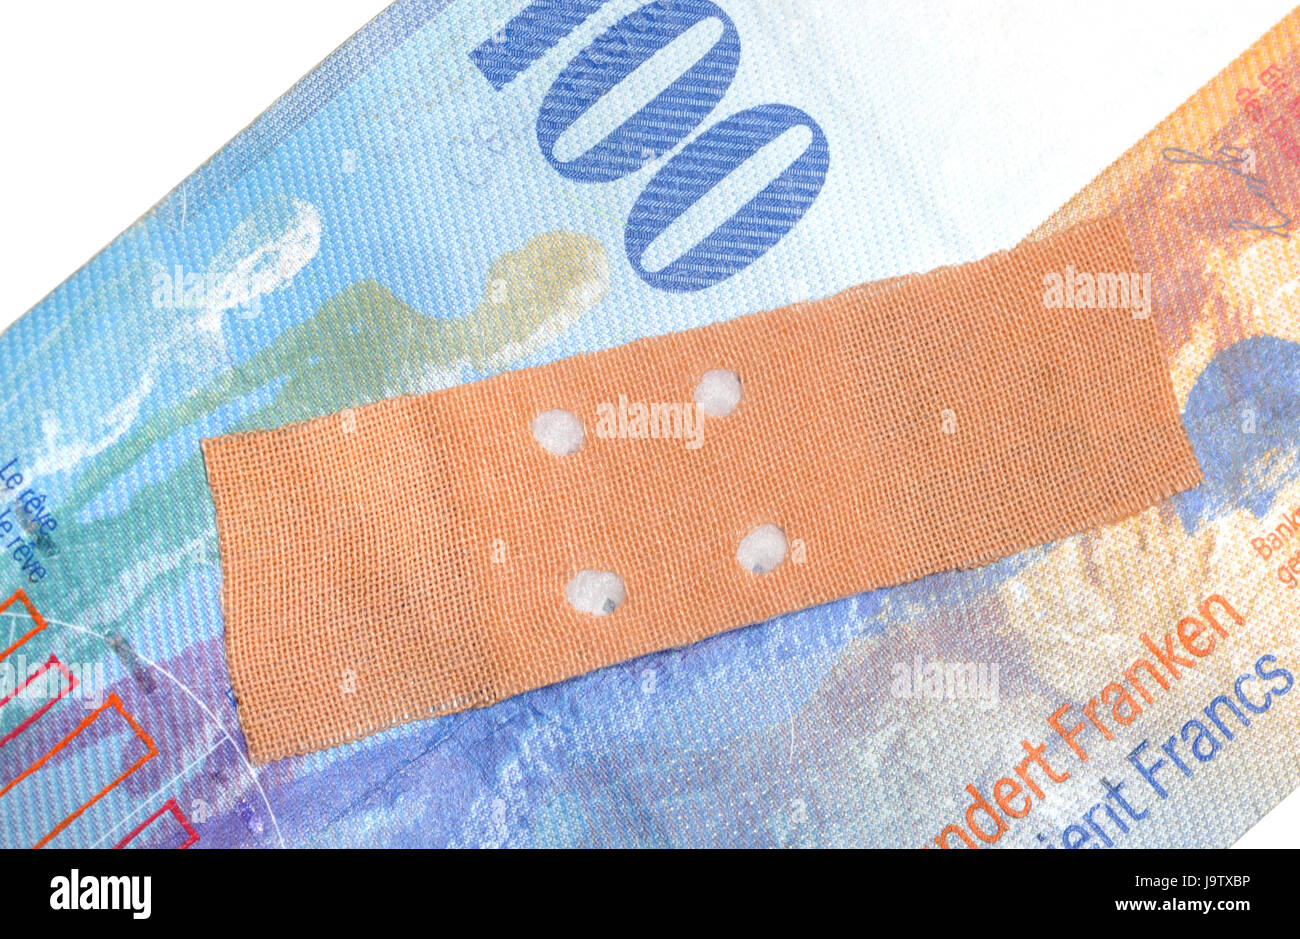 currency weakness - Stock Image